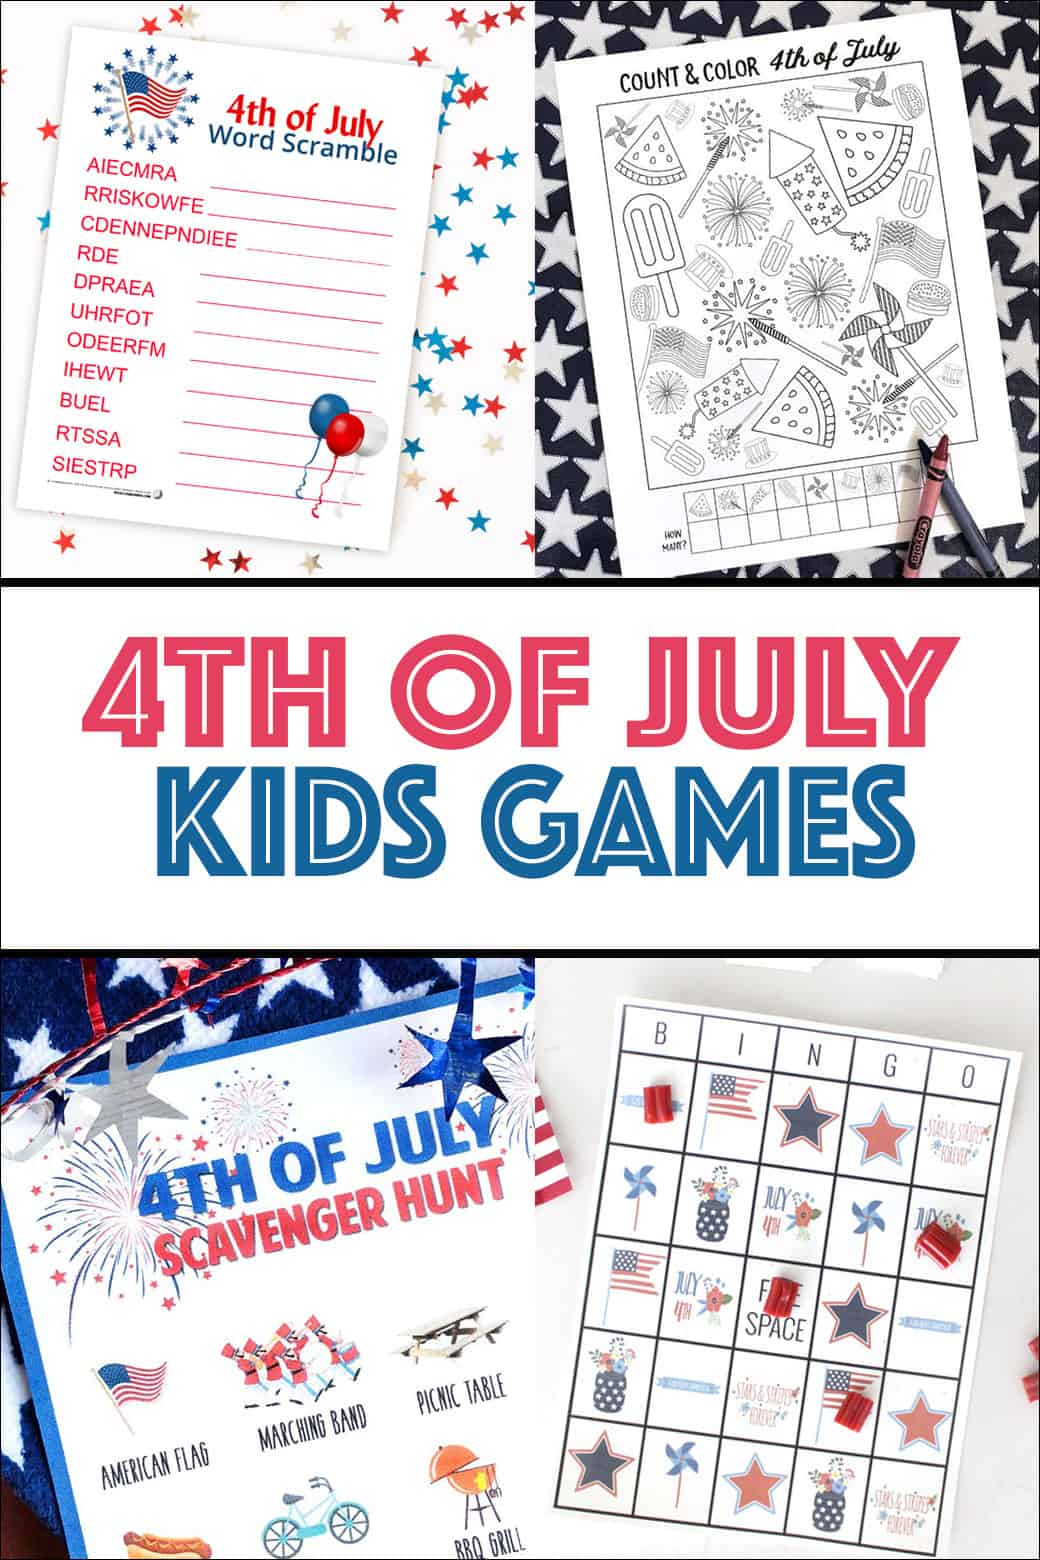 https://overthebigmoon.com/wp-content/uploads/2018/06/4th-of-july-kids-games.jpg